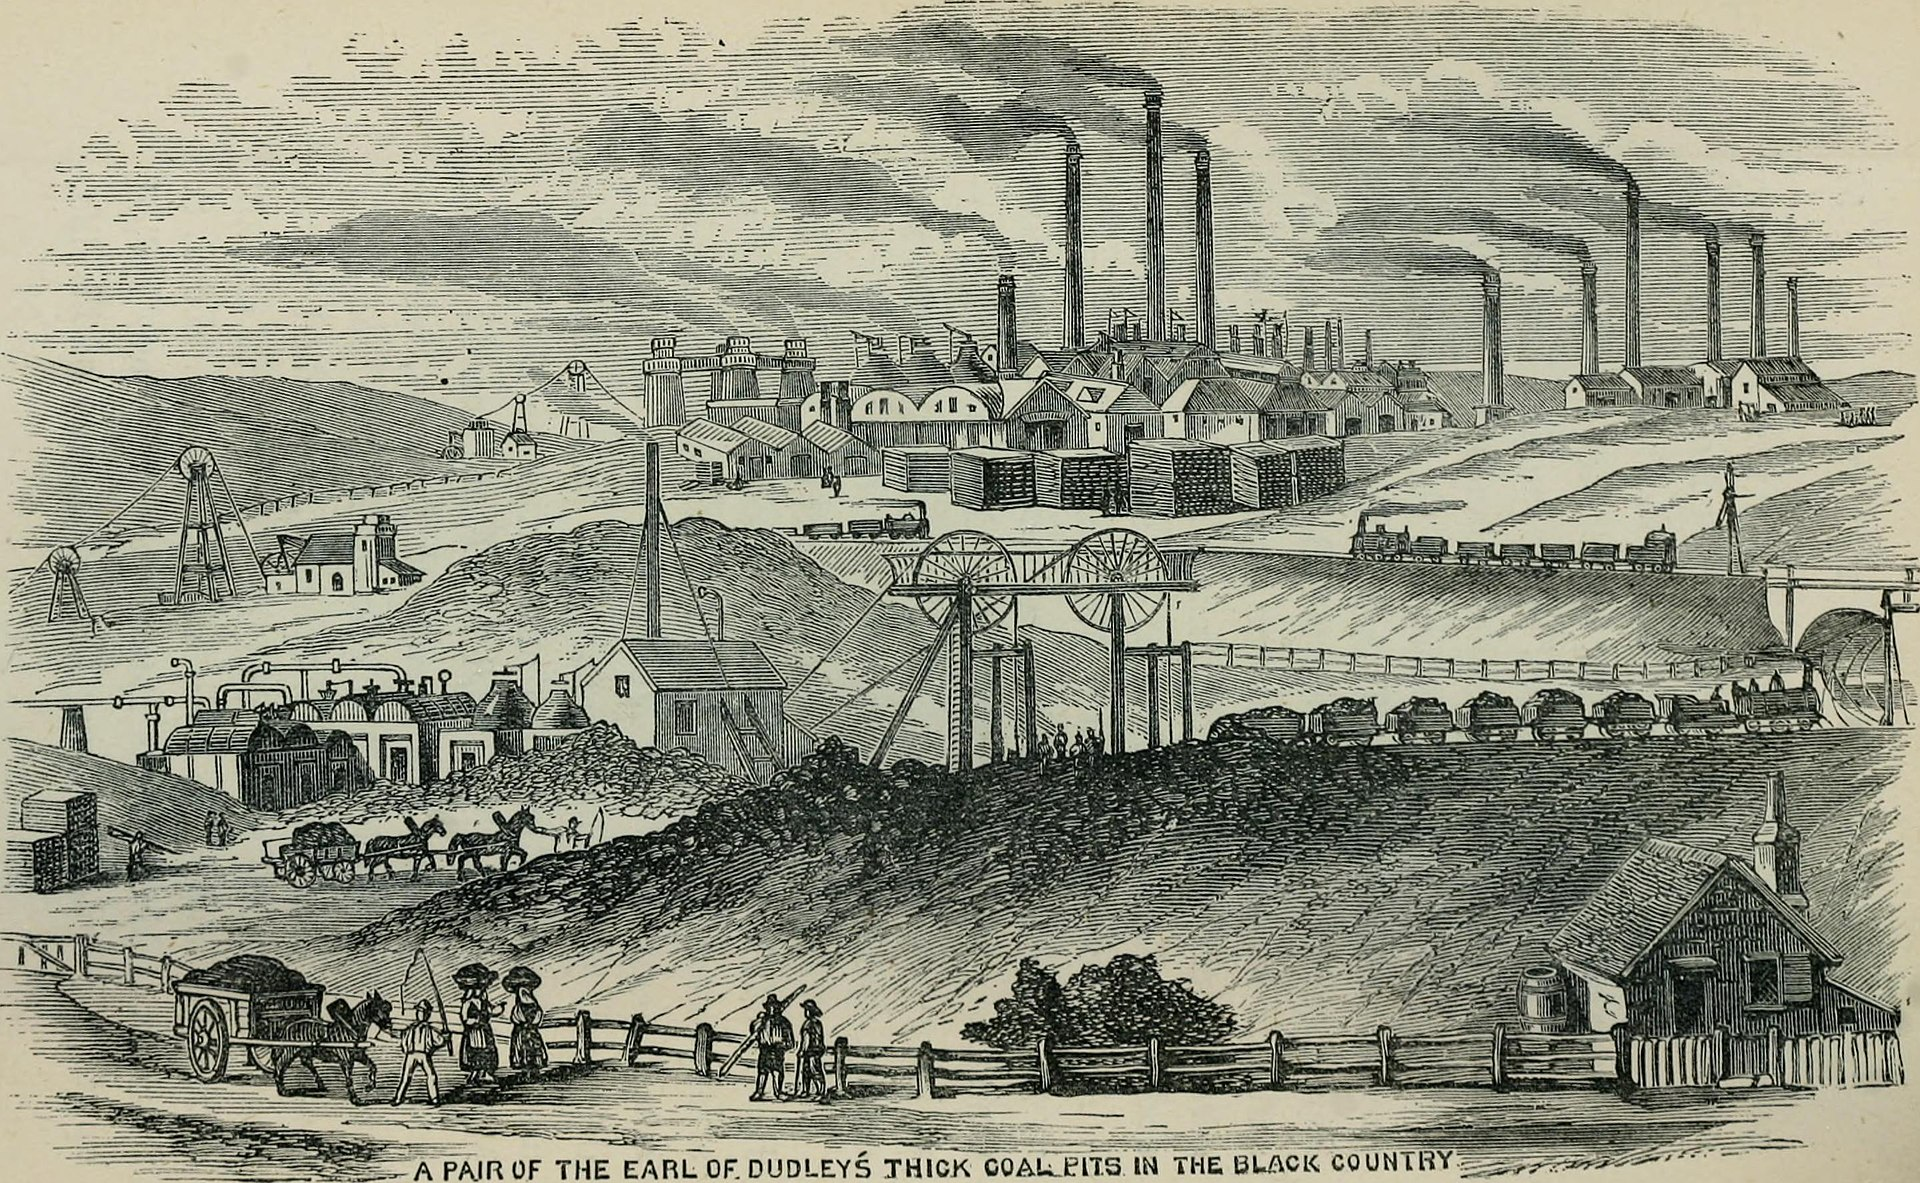 The Black Country in the 1870s